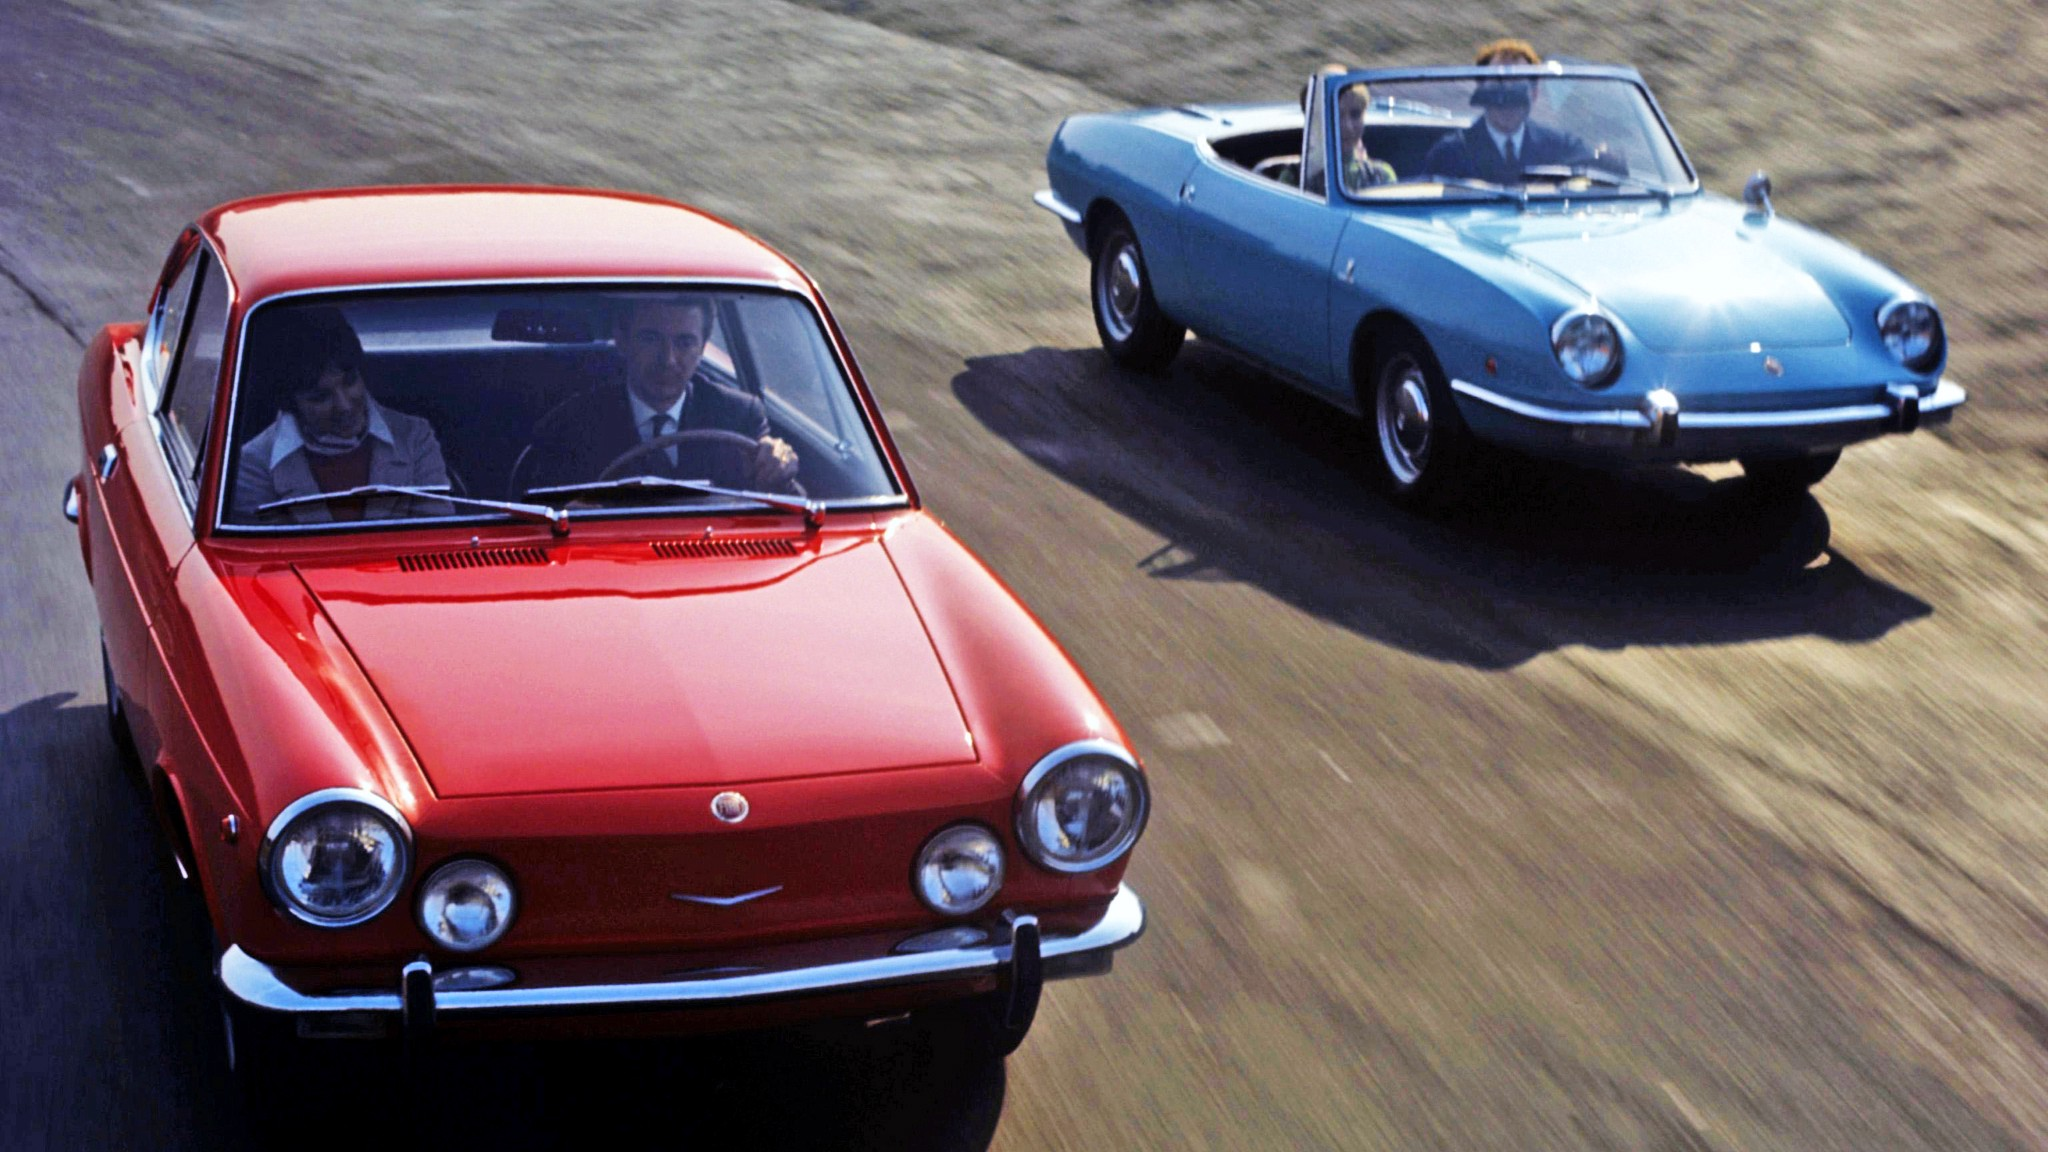 Playing It Safe The Fiat 850 The Fiat 850 Was Launched In 1964 When By Matteo Licata Roadster Life Medium